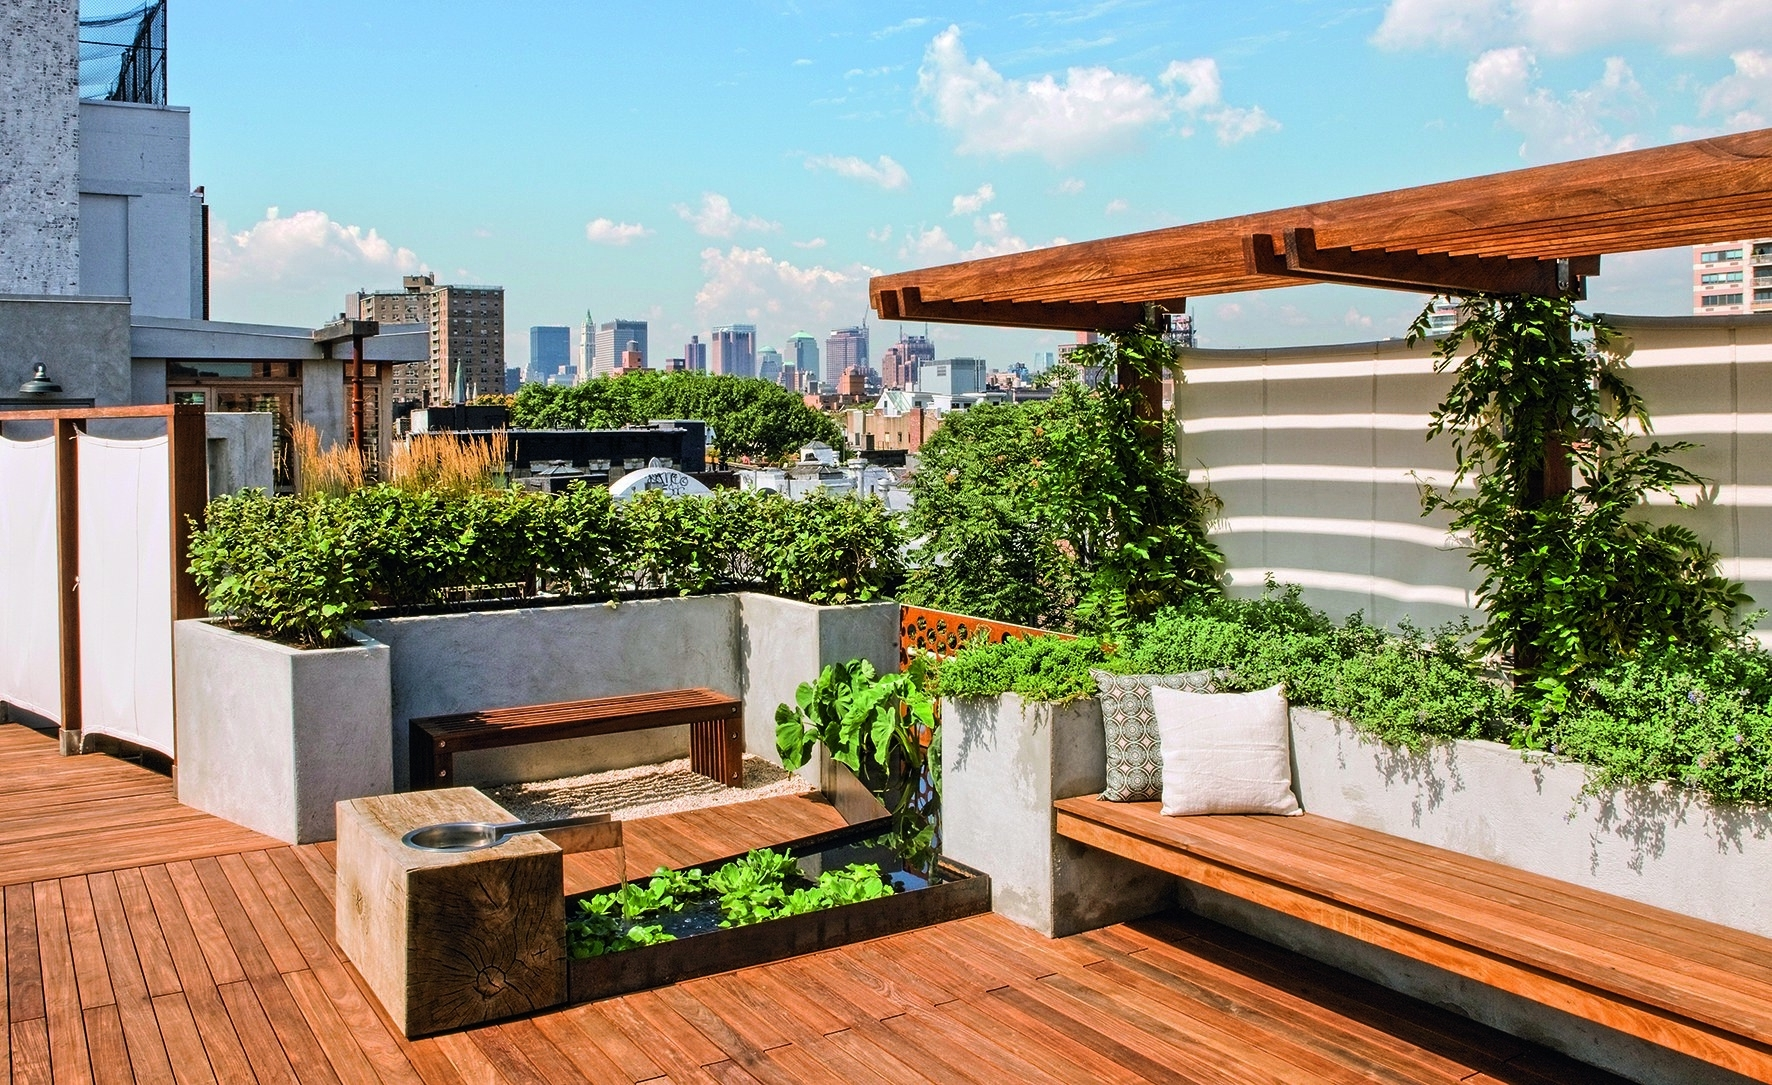 9 Remarkable Rooftop Garden Designs Around The World Photos within House Design With Rooftop Garden